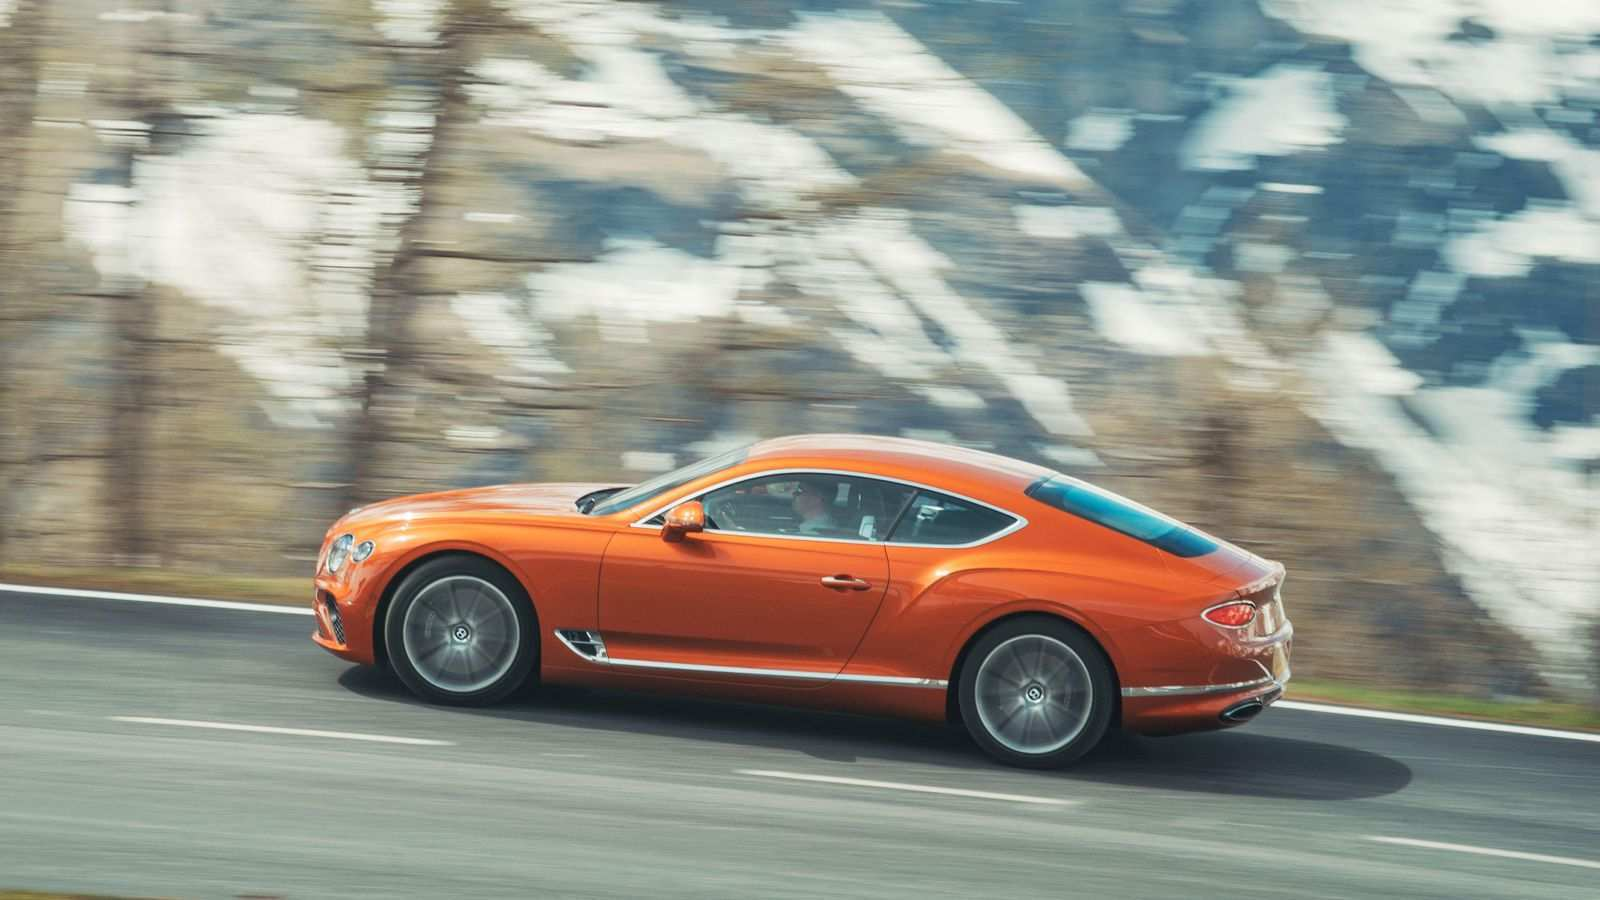 46 All New 2019 Bentley Continental Gt V8 First Drive